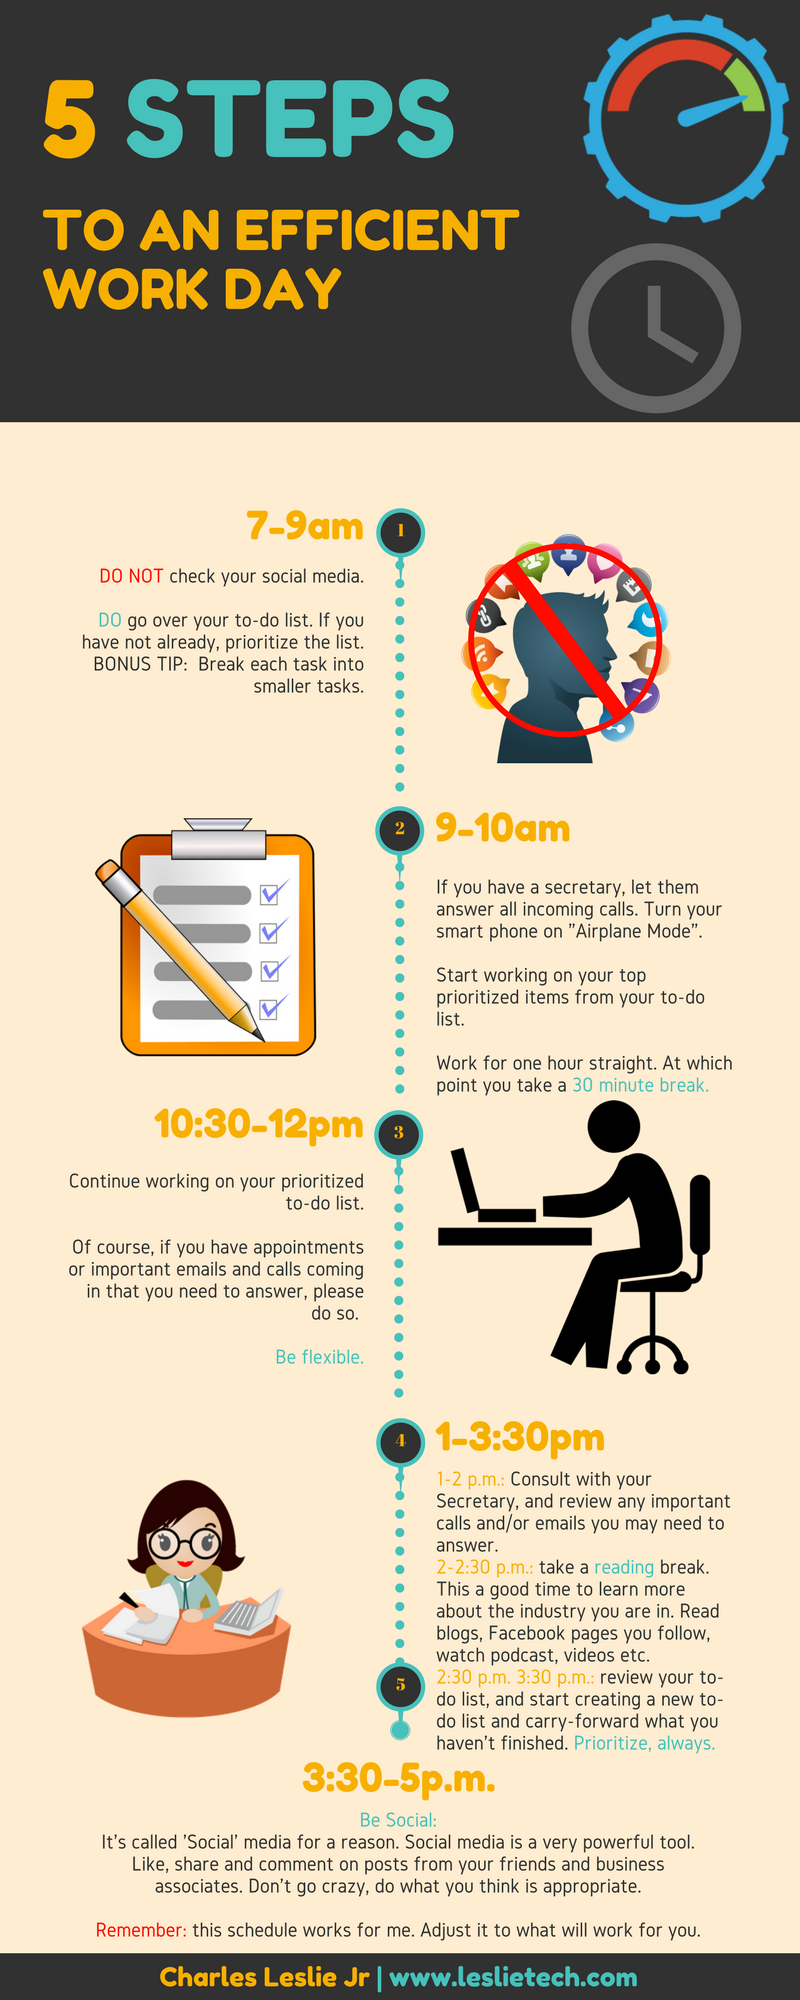 5 STEPS TO AN EFFICIENT WORK DAY